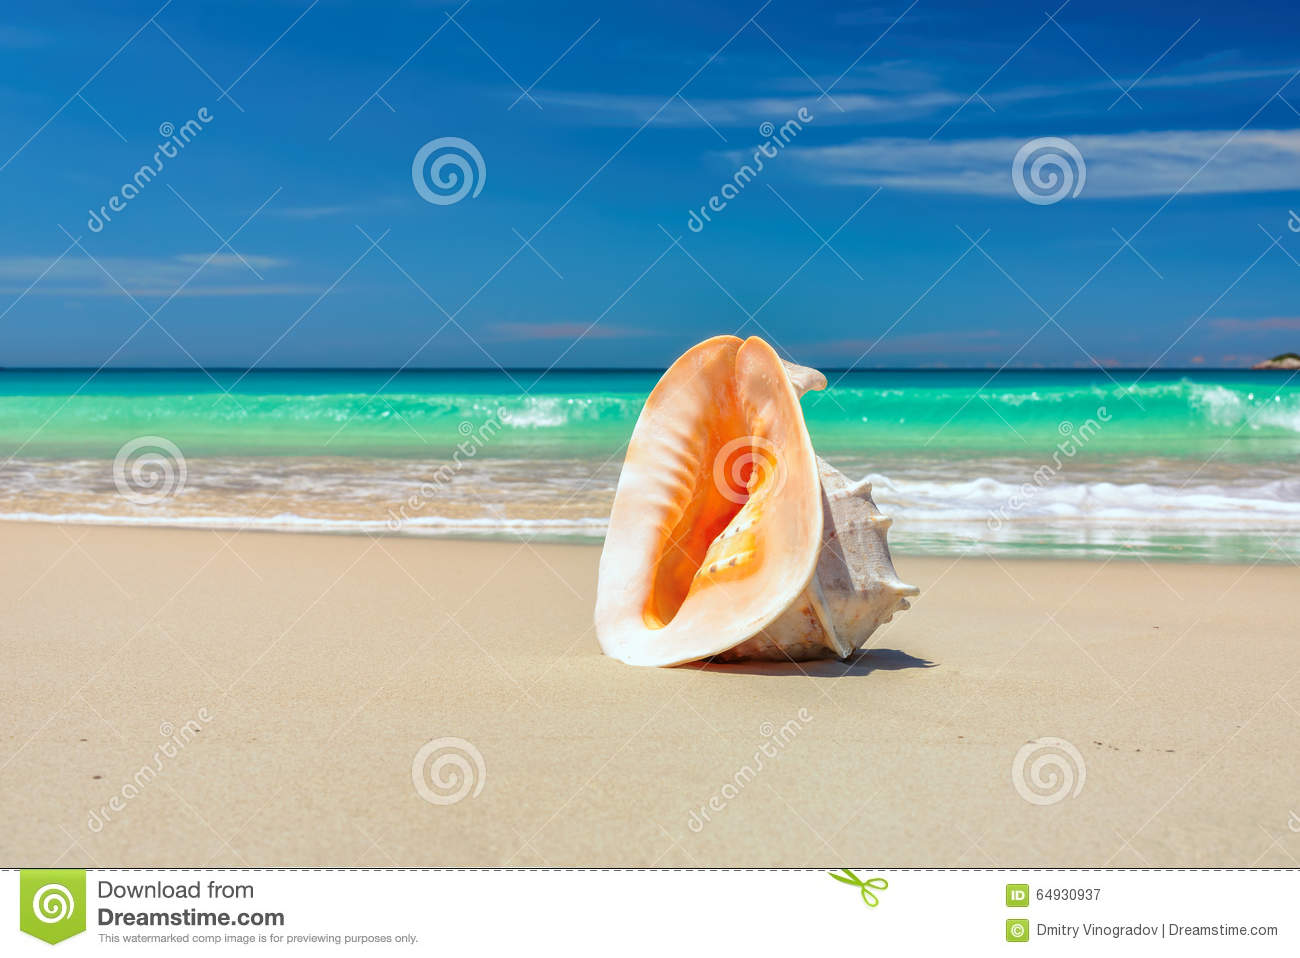 Shell on a beach under golden tropical sun beams